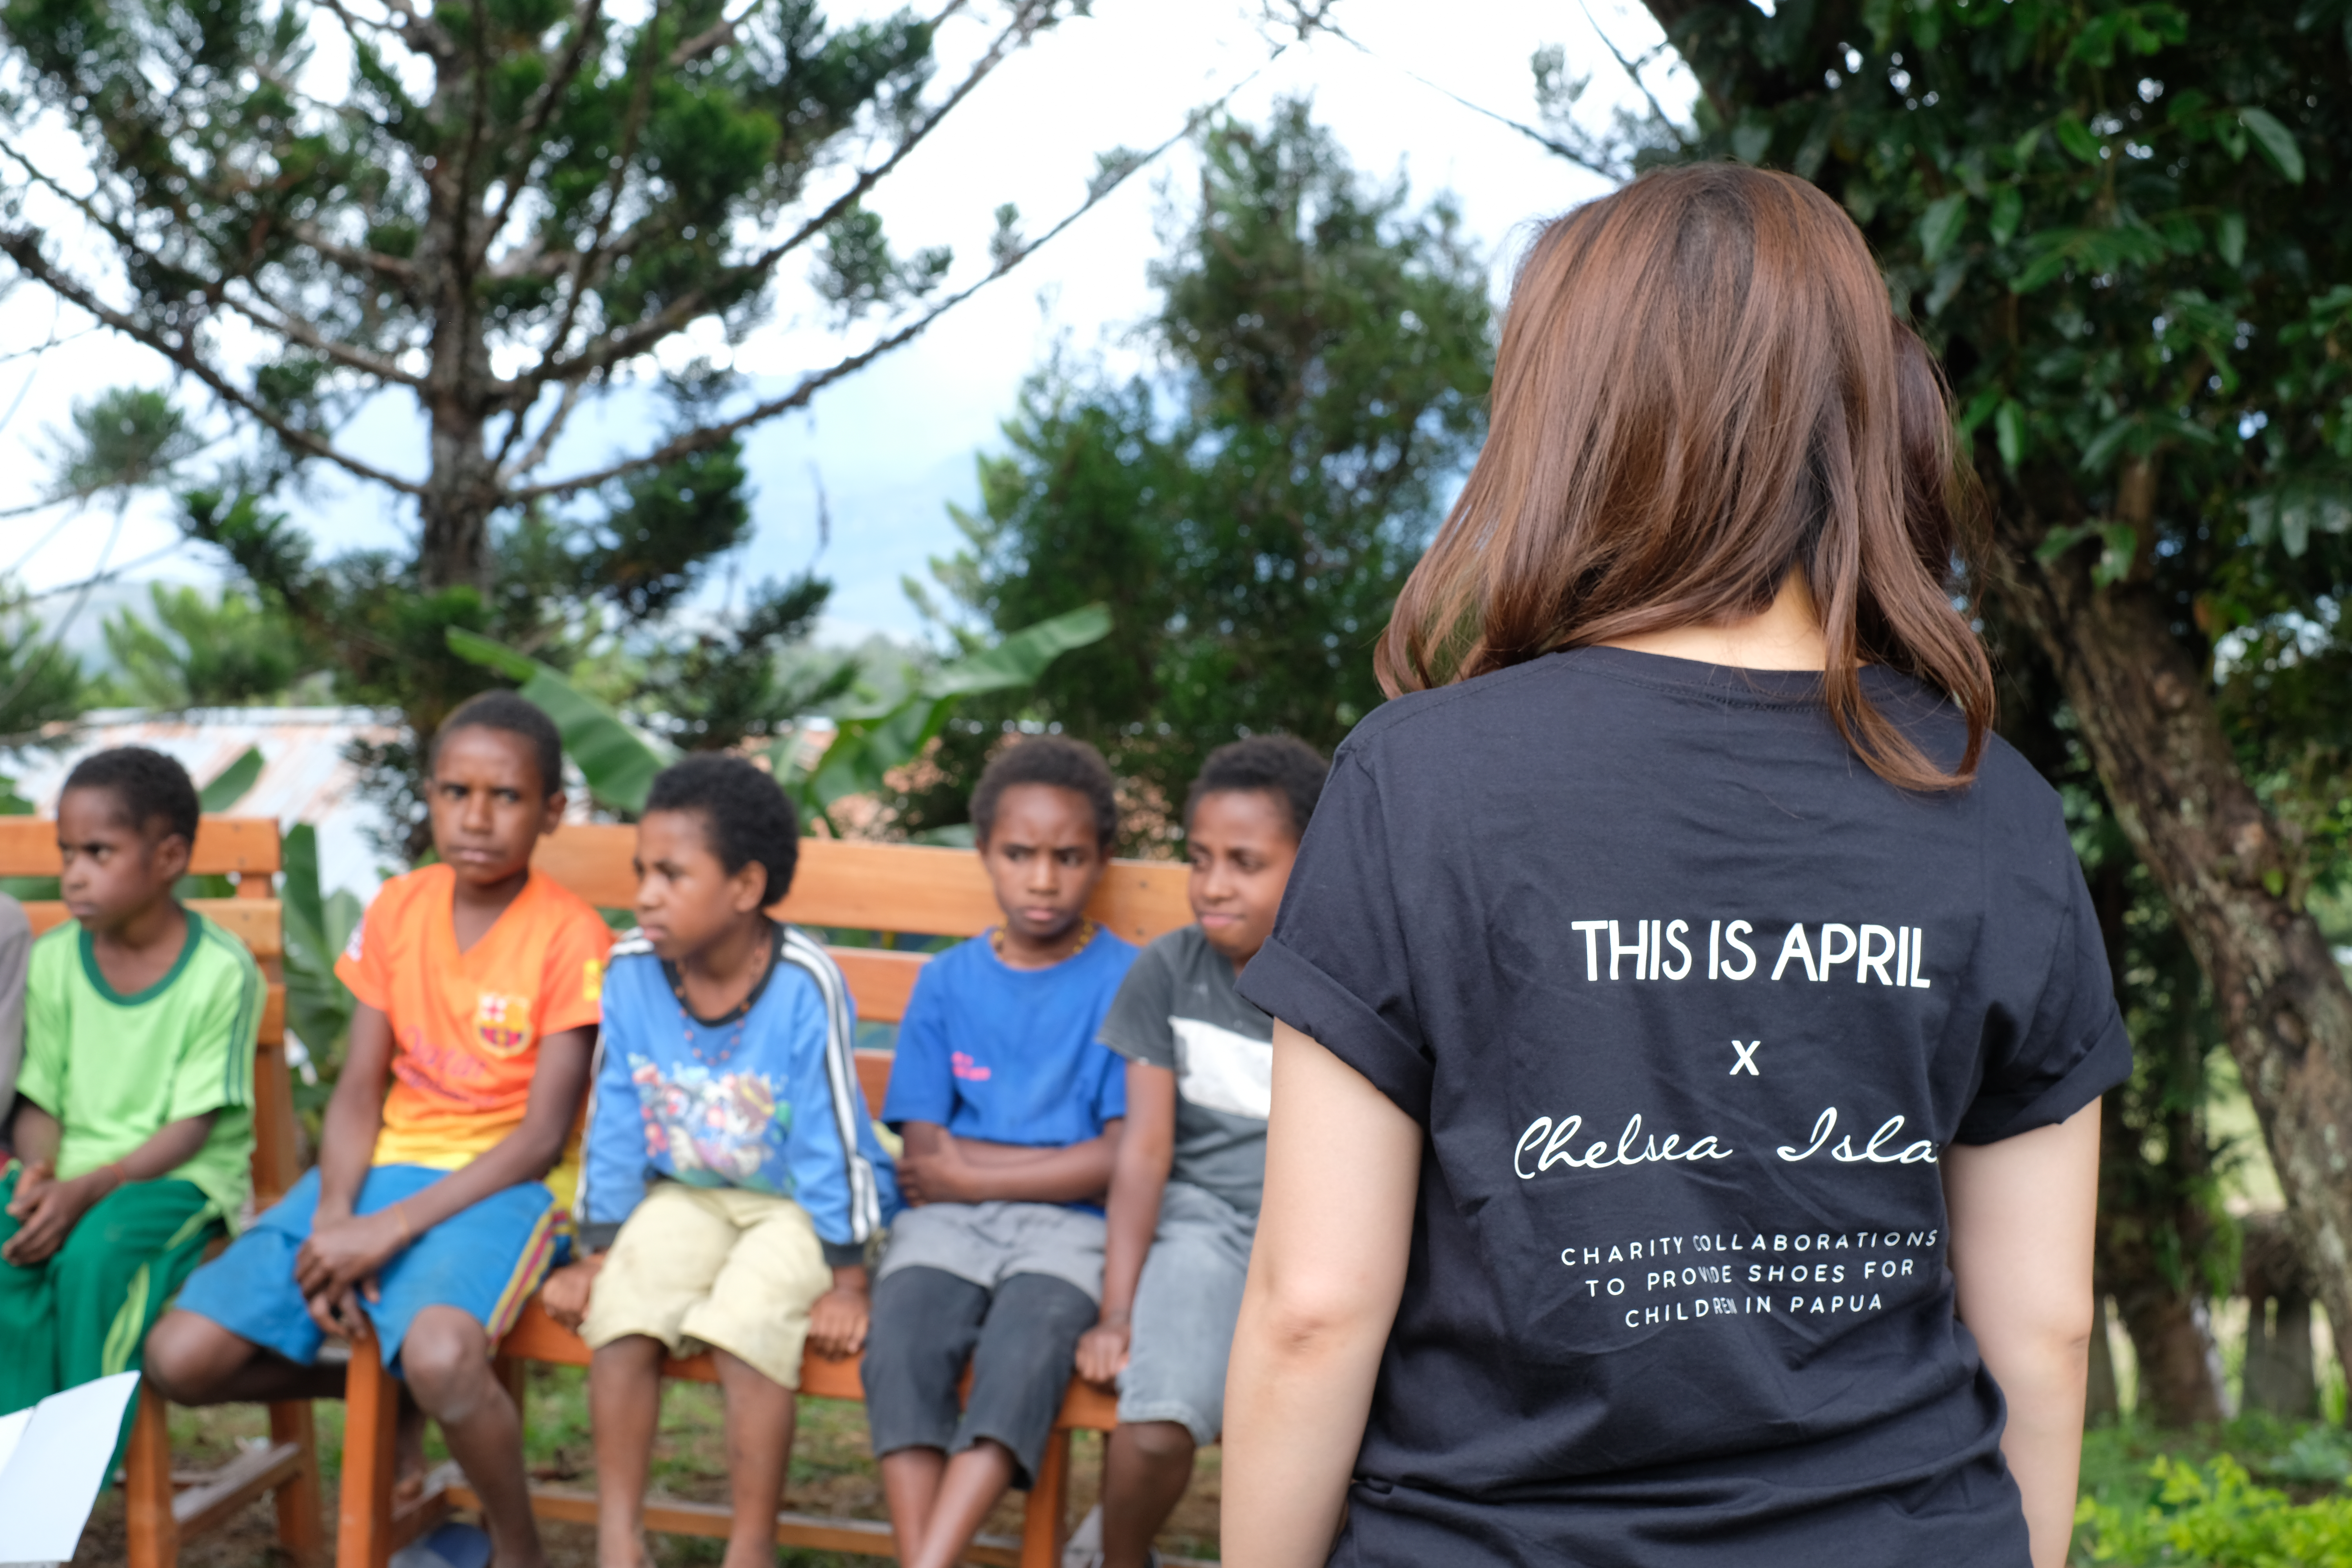 THIS IS APRIL X CHELSEA ISLAN GOES TO PAPUA TO DELIVER SHOES FOR CHILDREN IN WAMENA AND SENTANI image